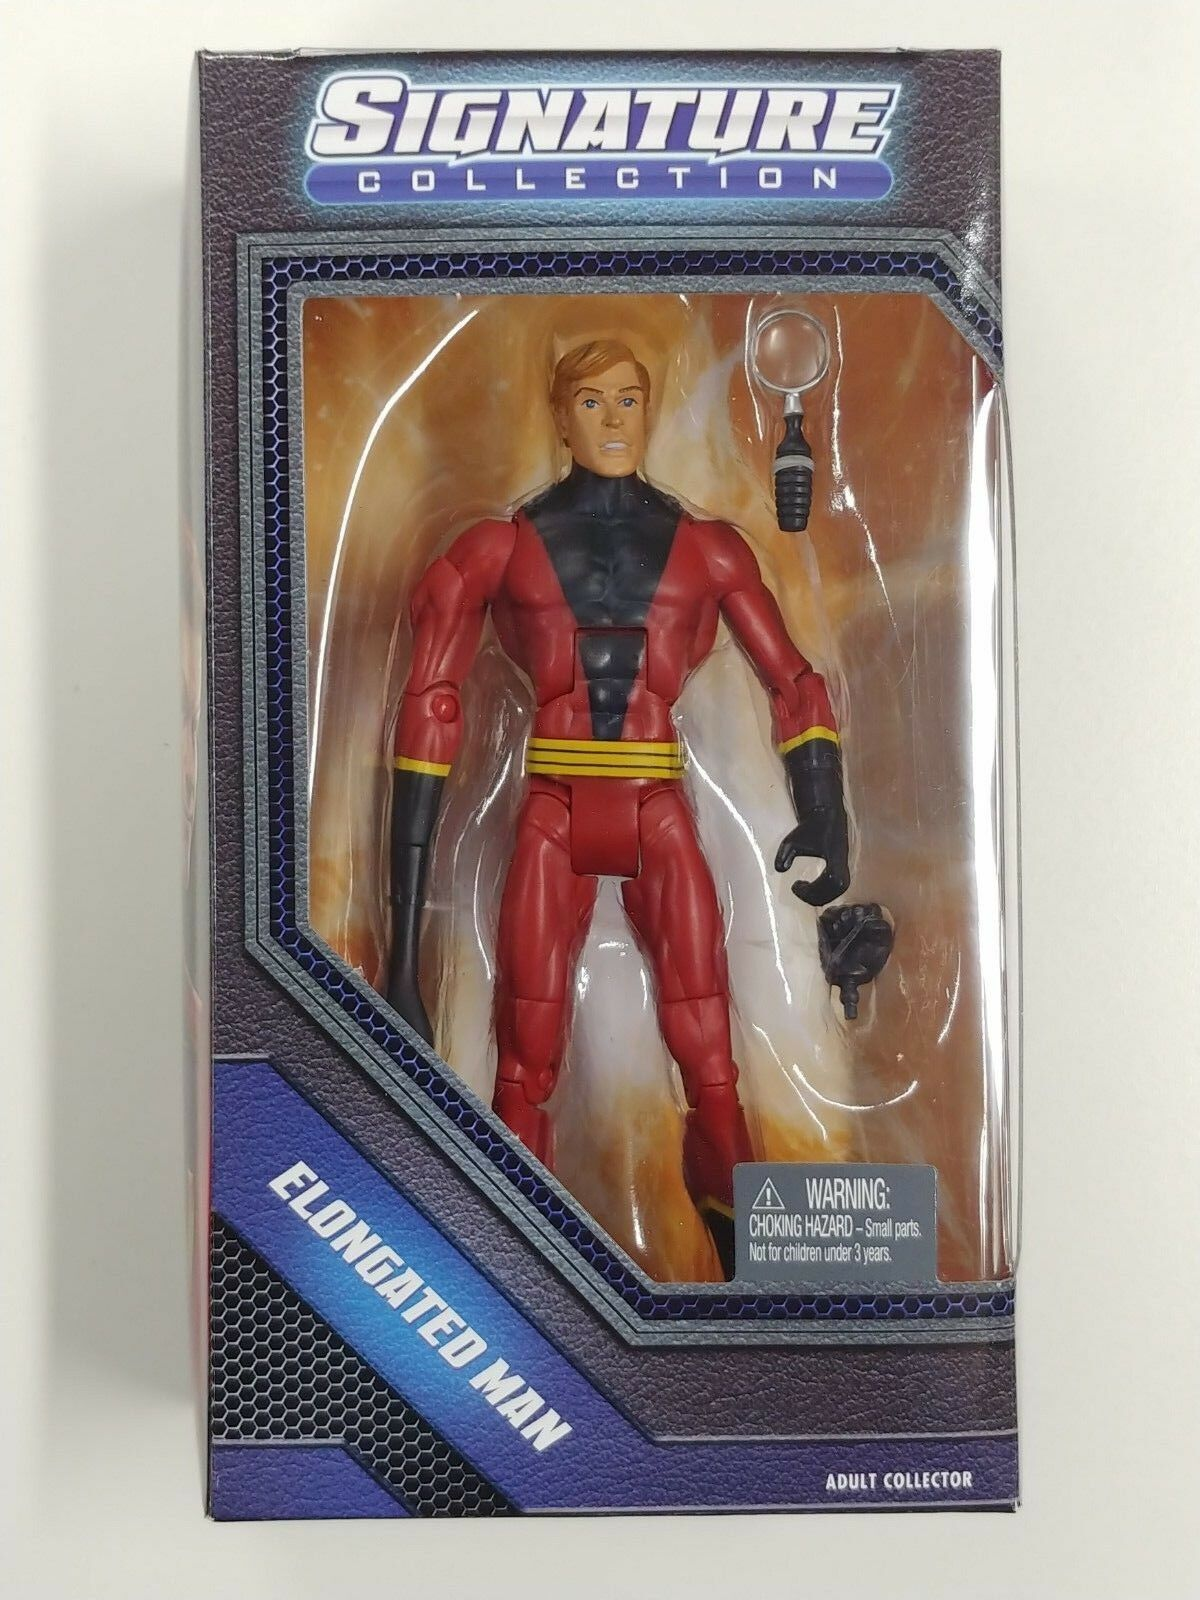 Elongated Man DC Universe Signature Collection Mattycollector Exclusive